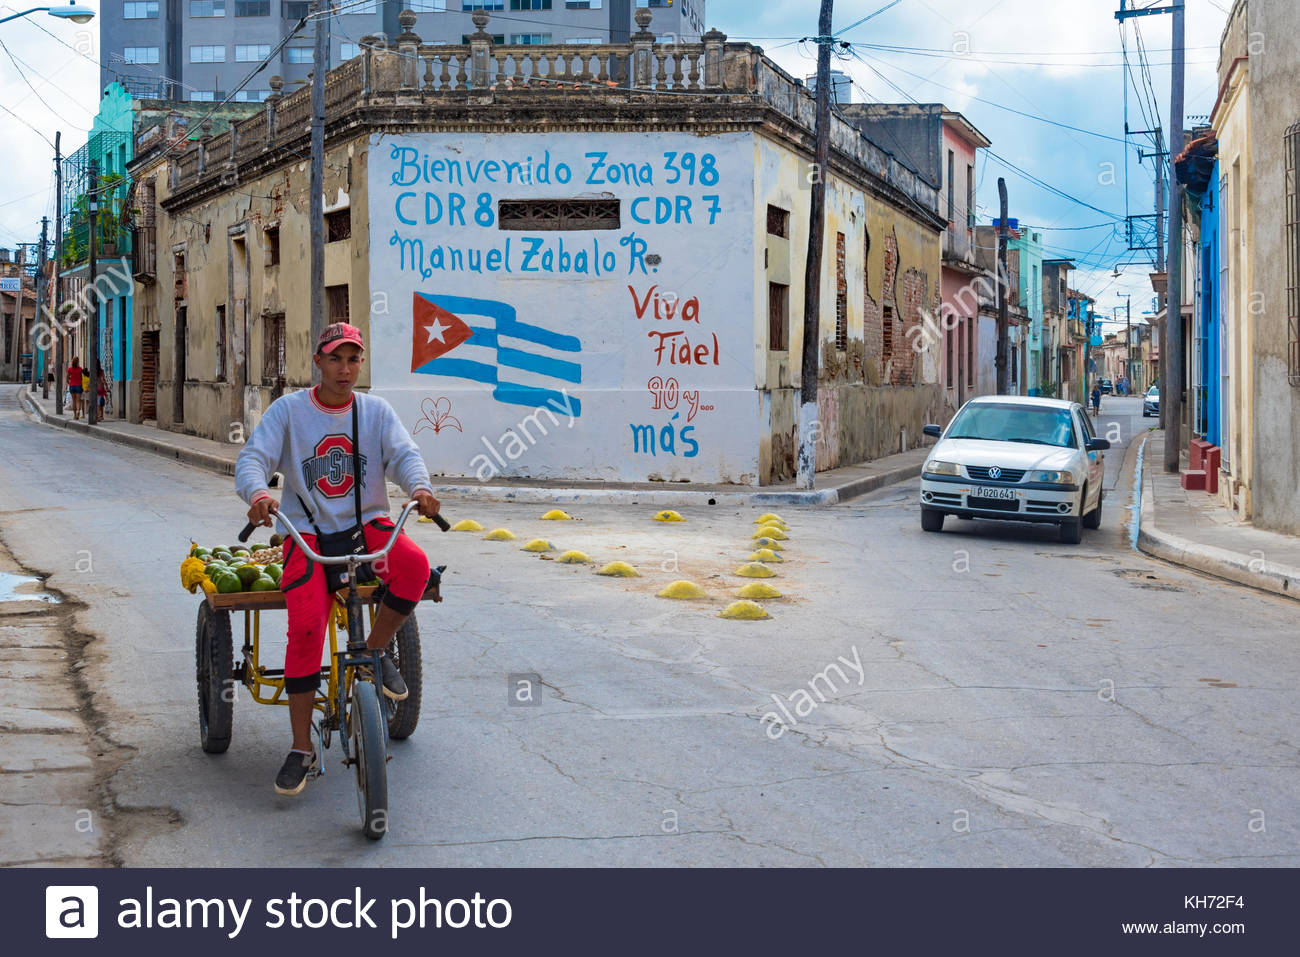 Camaguey, Cuba: Man riding bicitaxi, revolution propaganda as background - Stock Image